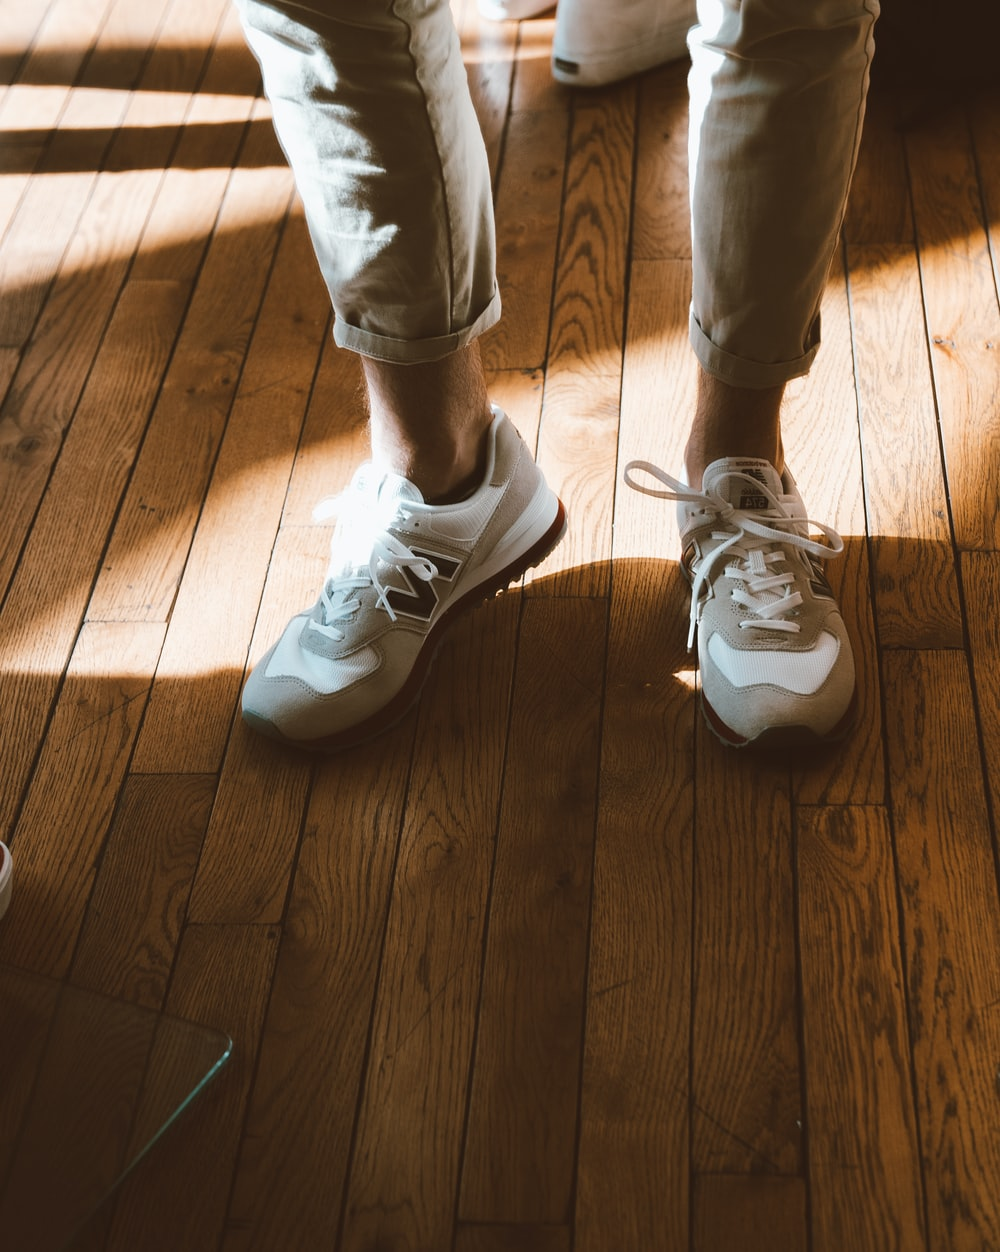 person wearing white New Balance shoes